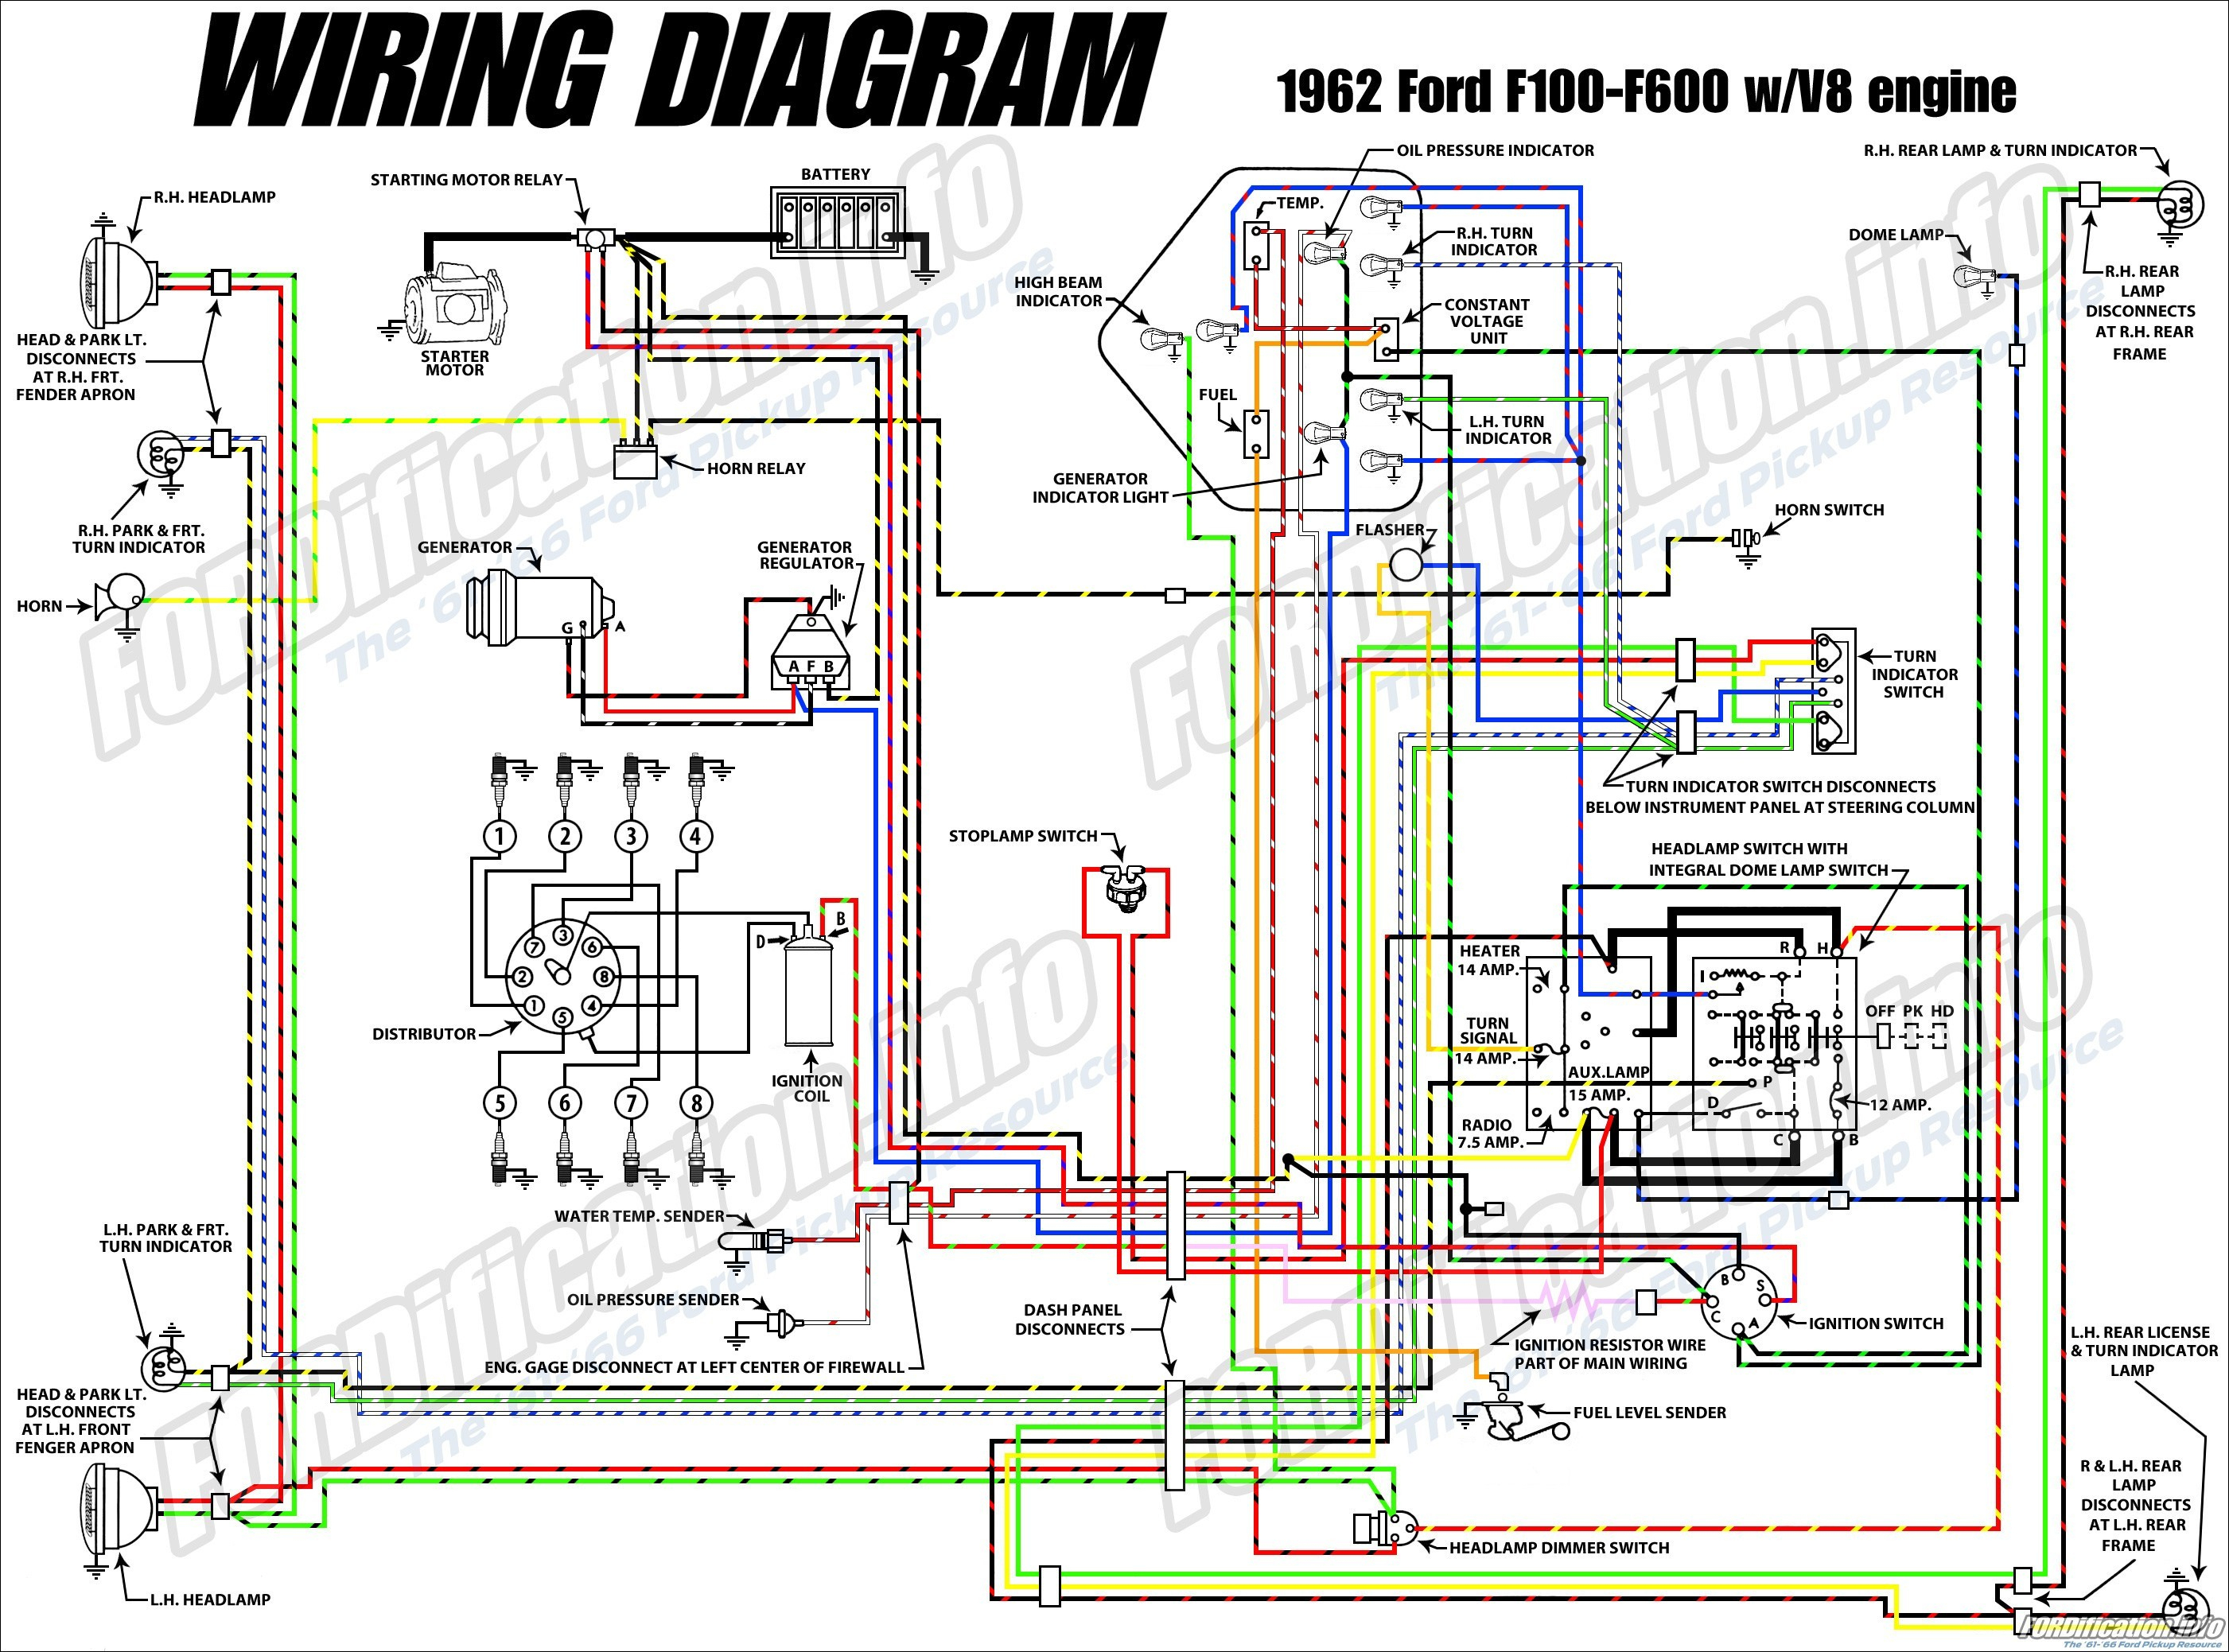 Speed Tech Lights Wiring Diagram | Manual E-Books - Speed Tech Lights Wiring Diagram